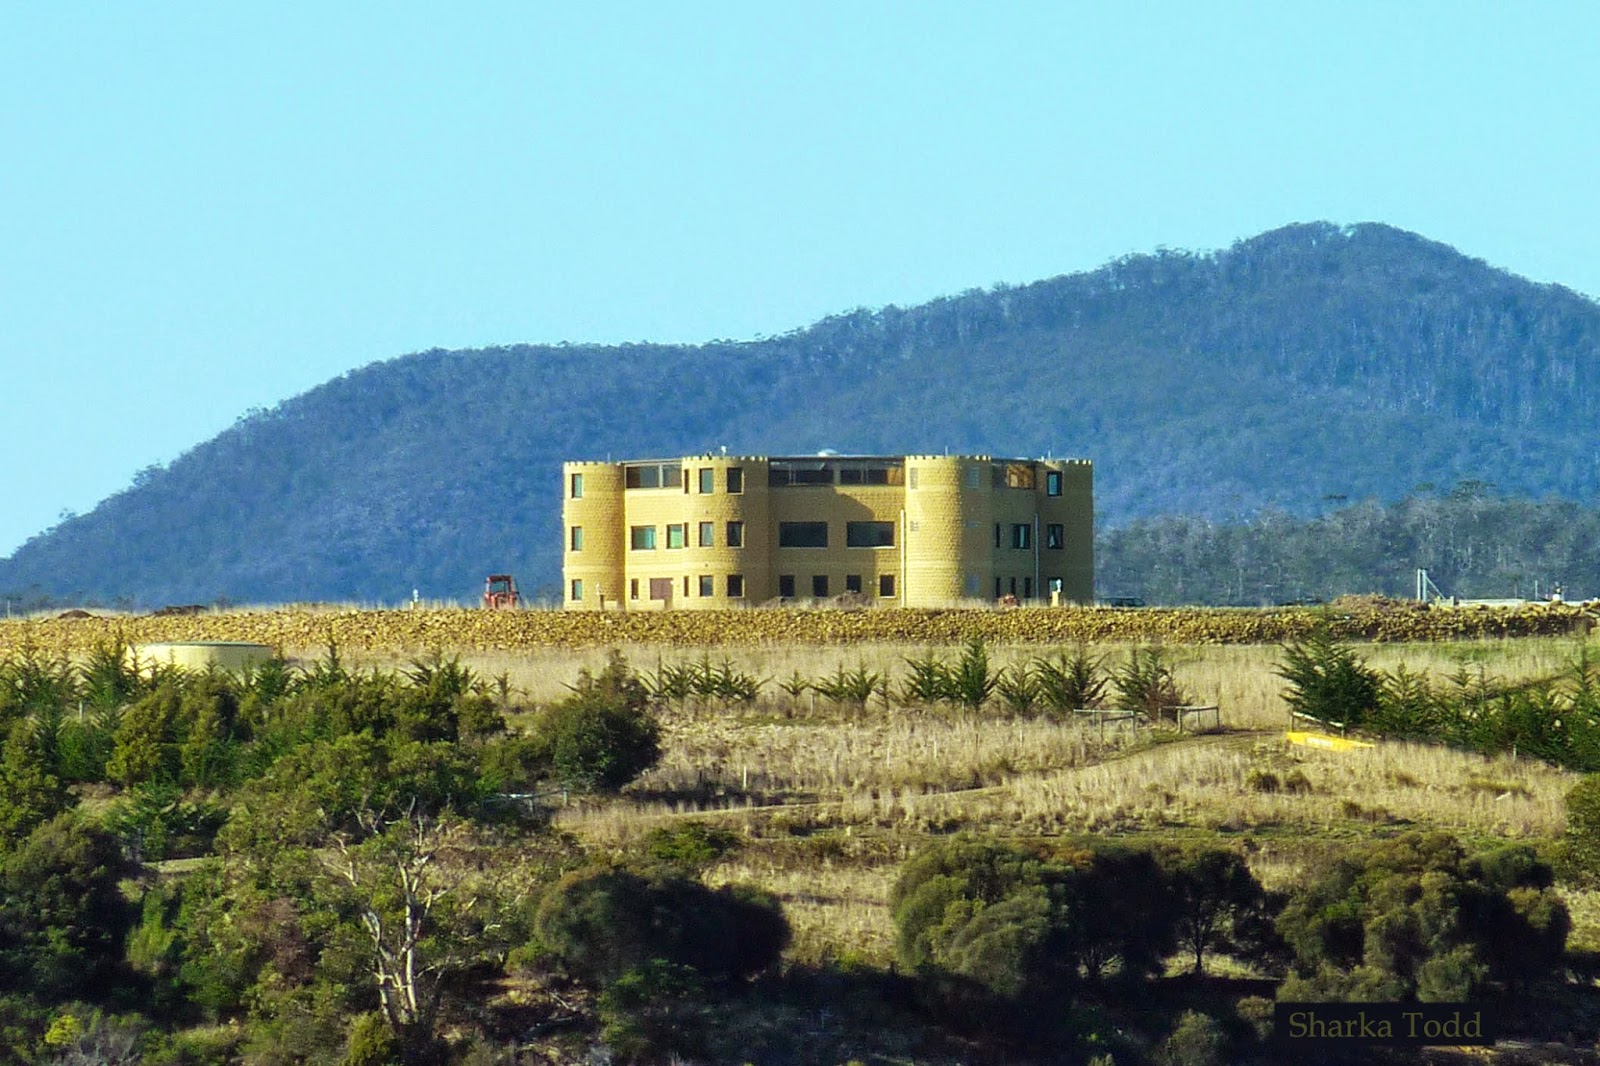 Mansion/castle located on Boomer Island, Tasmania by Gunter Jaeger